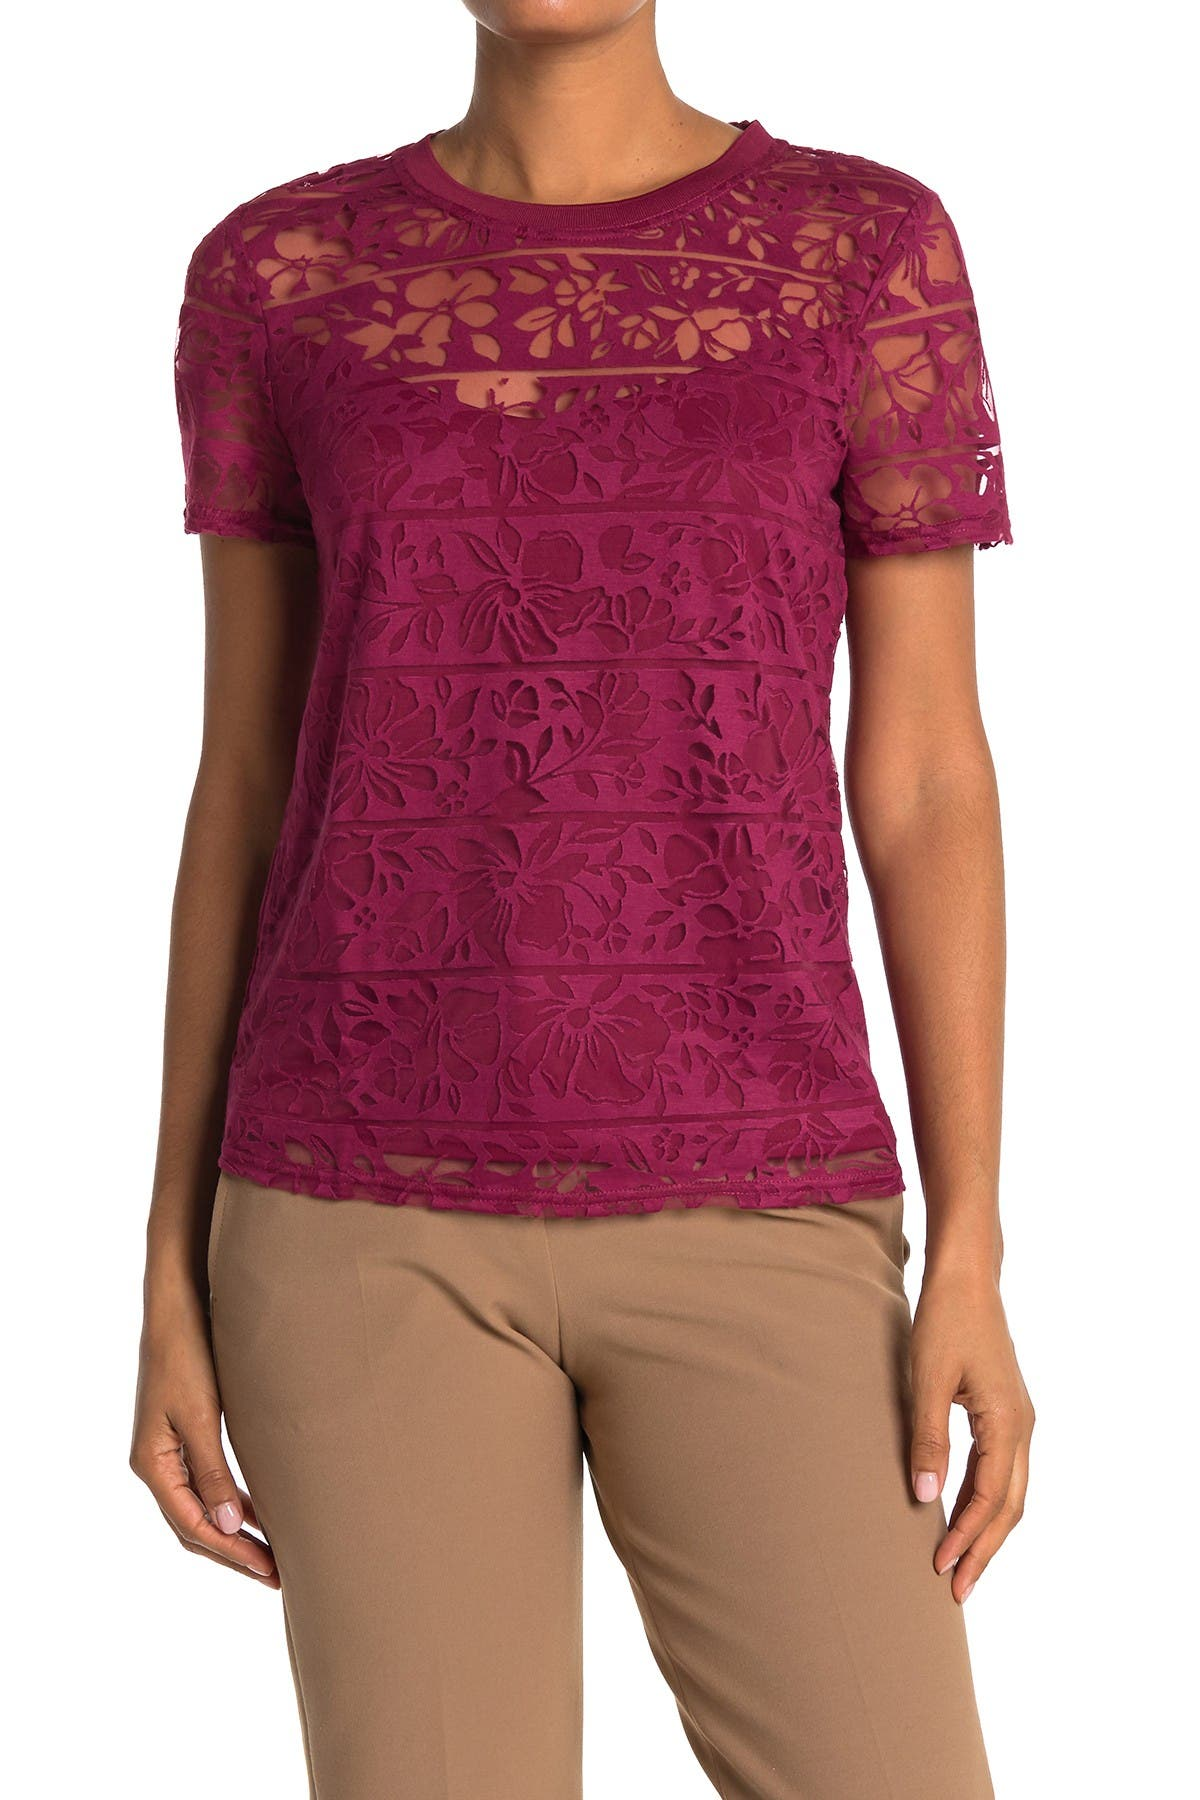 Image of Laundry By Shelli Segal Floral Stripe Burnout T-Shirt